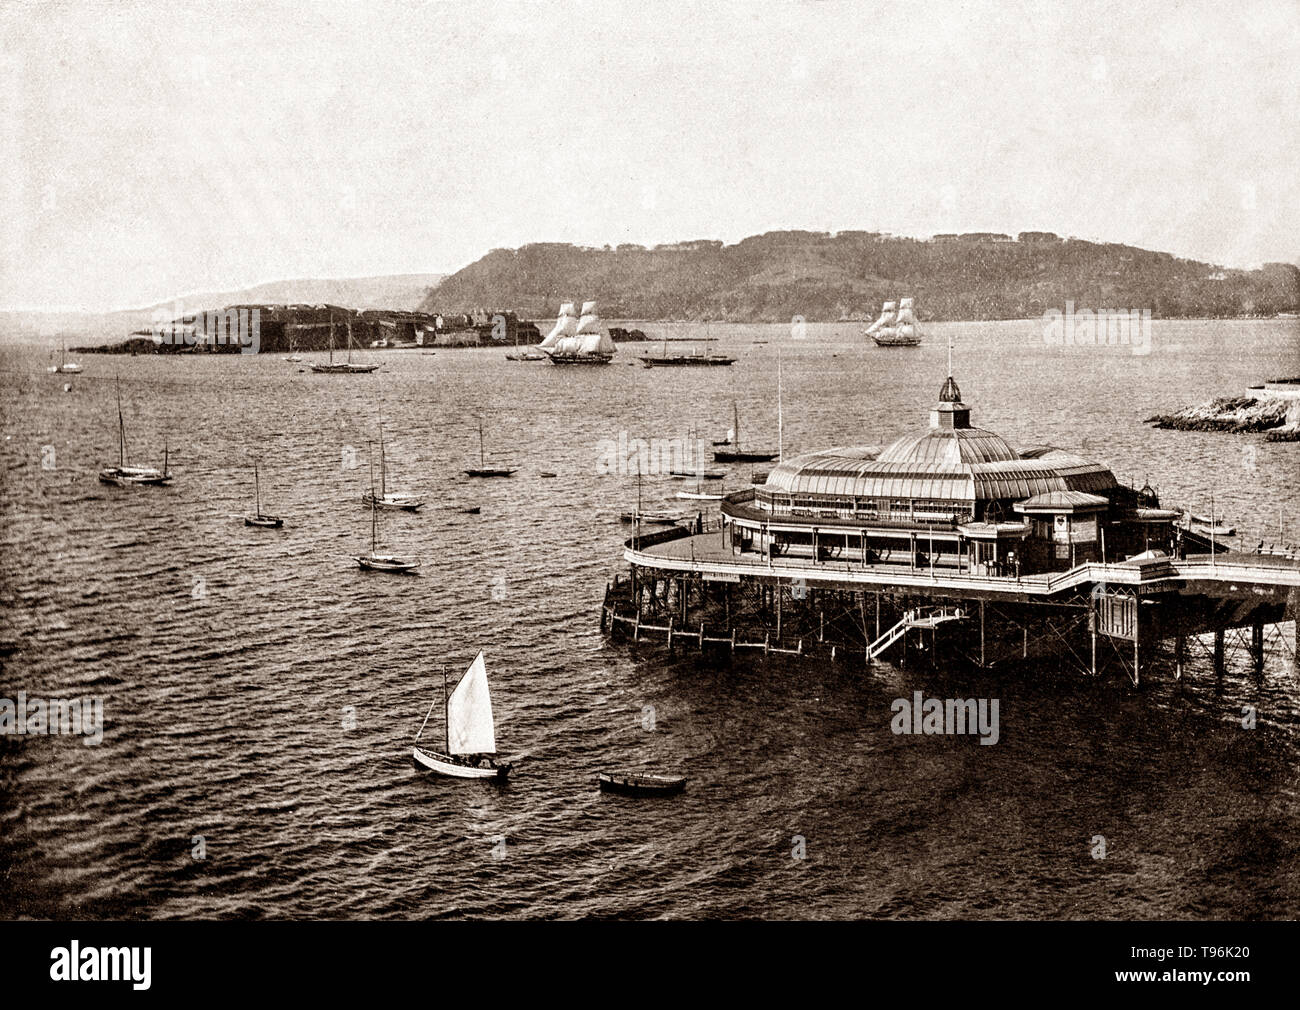 A late 19th Century view of yachts and sailing beyond the promenade pier, opened in 1884, in Plymouth, a port city situated on the south coast of Devon, England.  Enclosing the city are the mouths of the river Plym and river Tamar, which are naturally incorporated into Plymouth Sound to form a boundary with Cornwall. - Stock Image